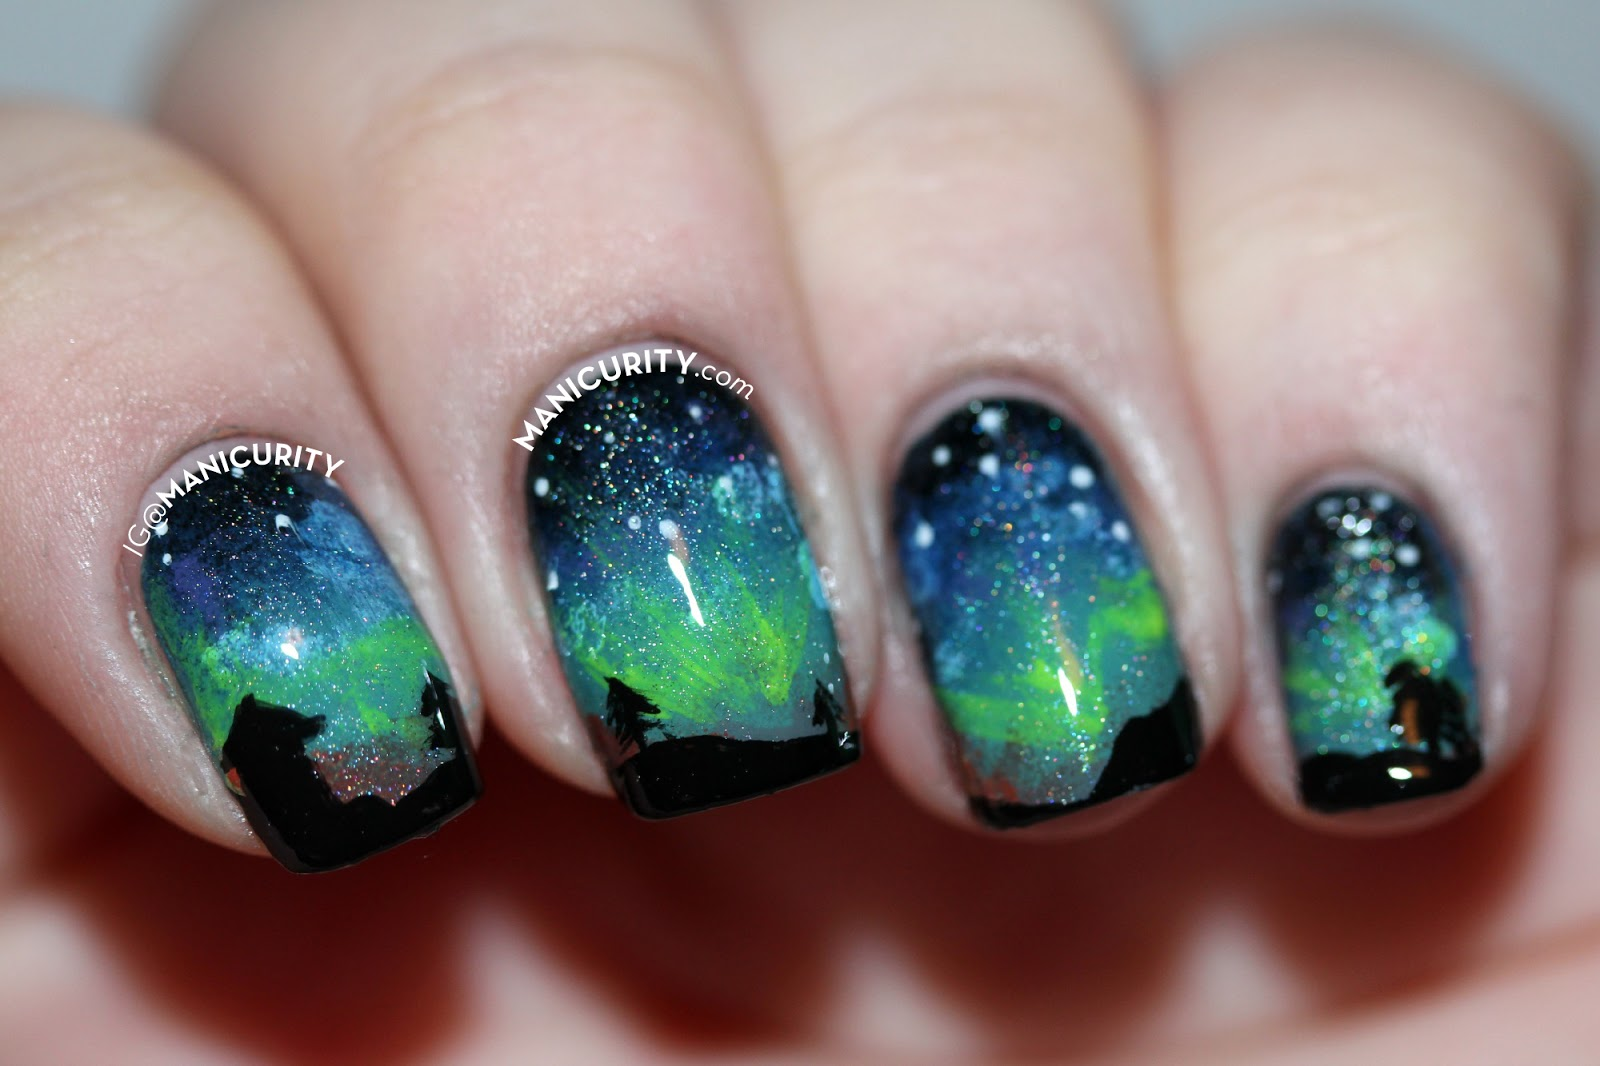 The Digit-al Dozen: Aurora Borealis Nail Art - The Northern Lights Nails | Manicurity.com